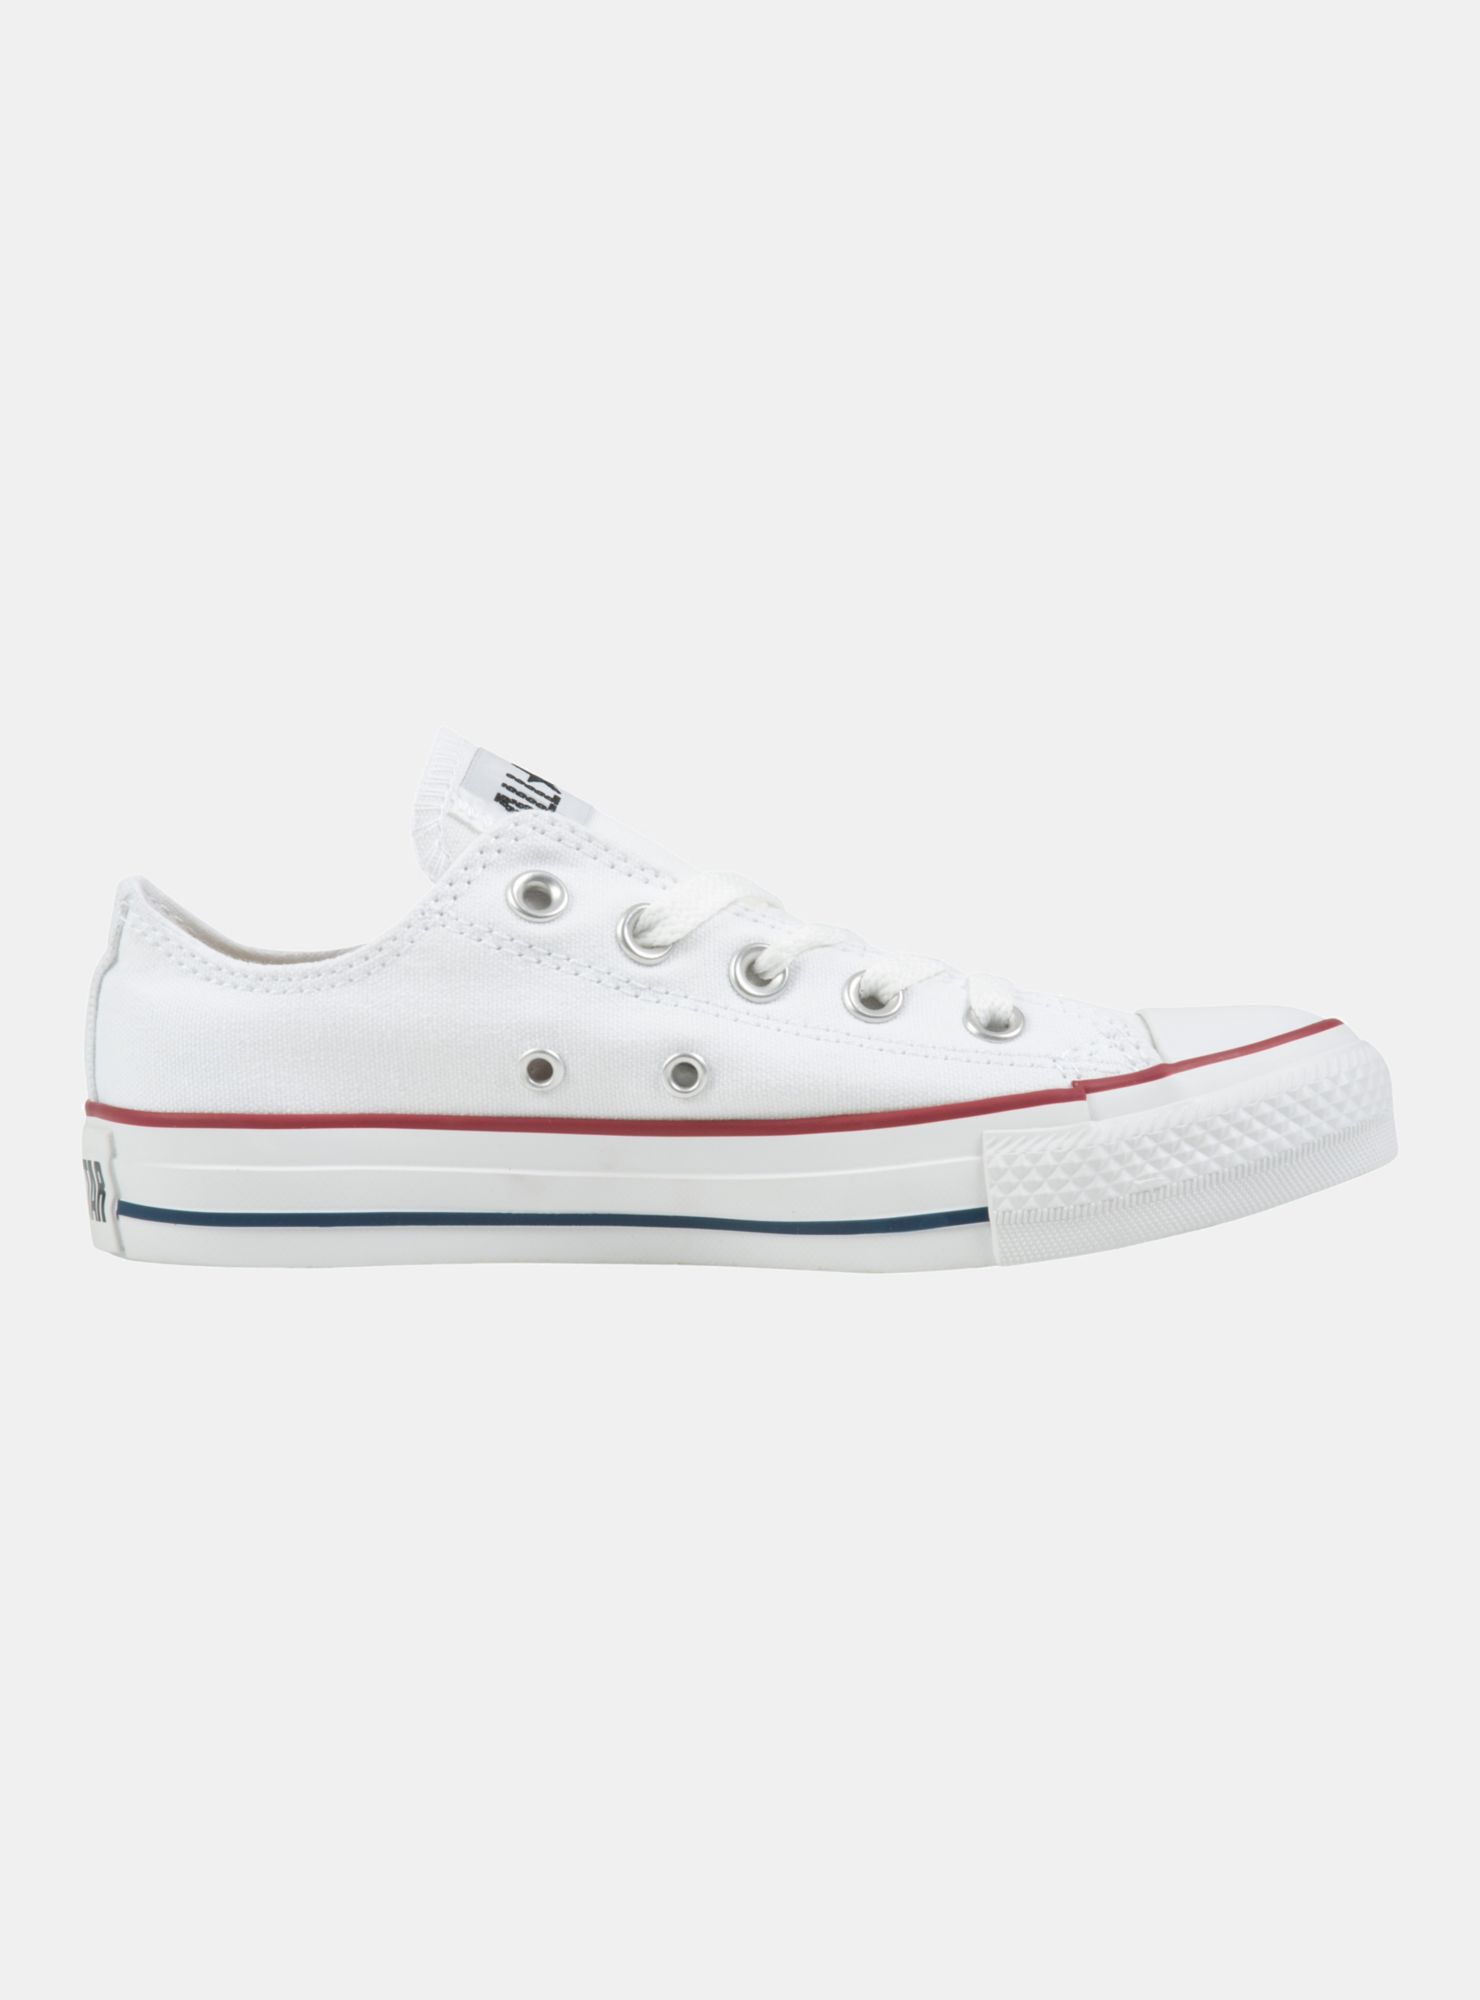 0b1b745c Zapatilla Converse Chuck Taylor All Star Classic Colours Urbana ...